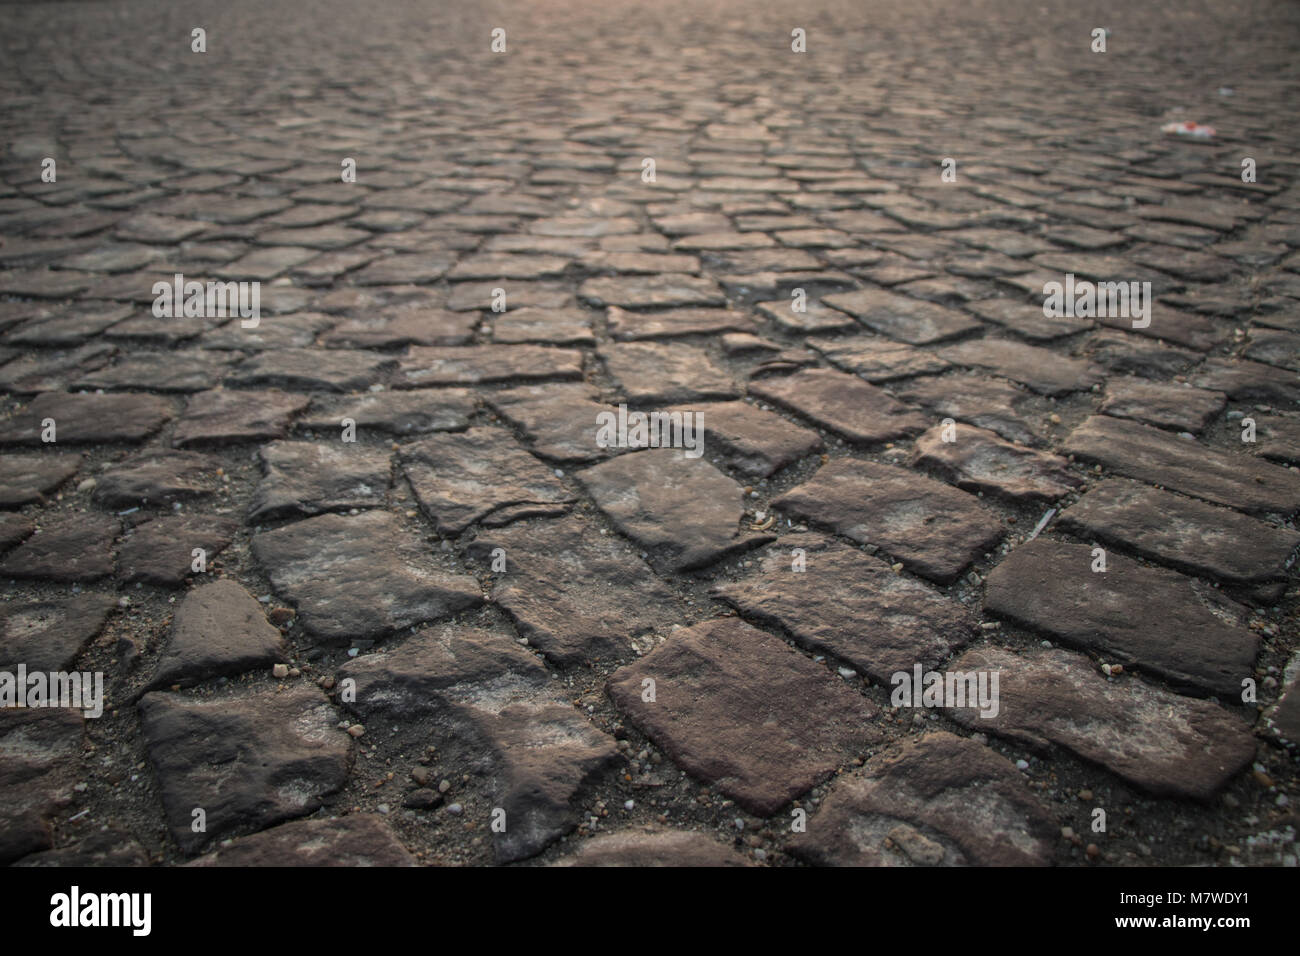 Cubic stone road texture perspective - Stock Image